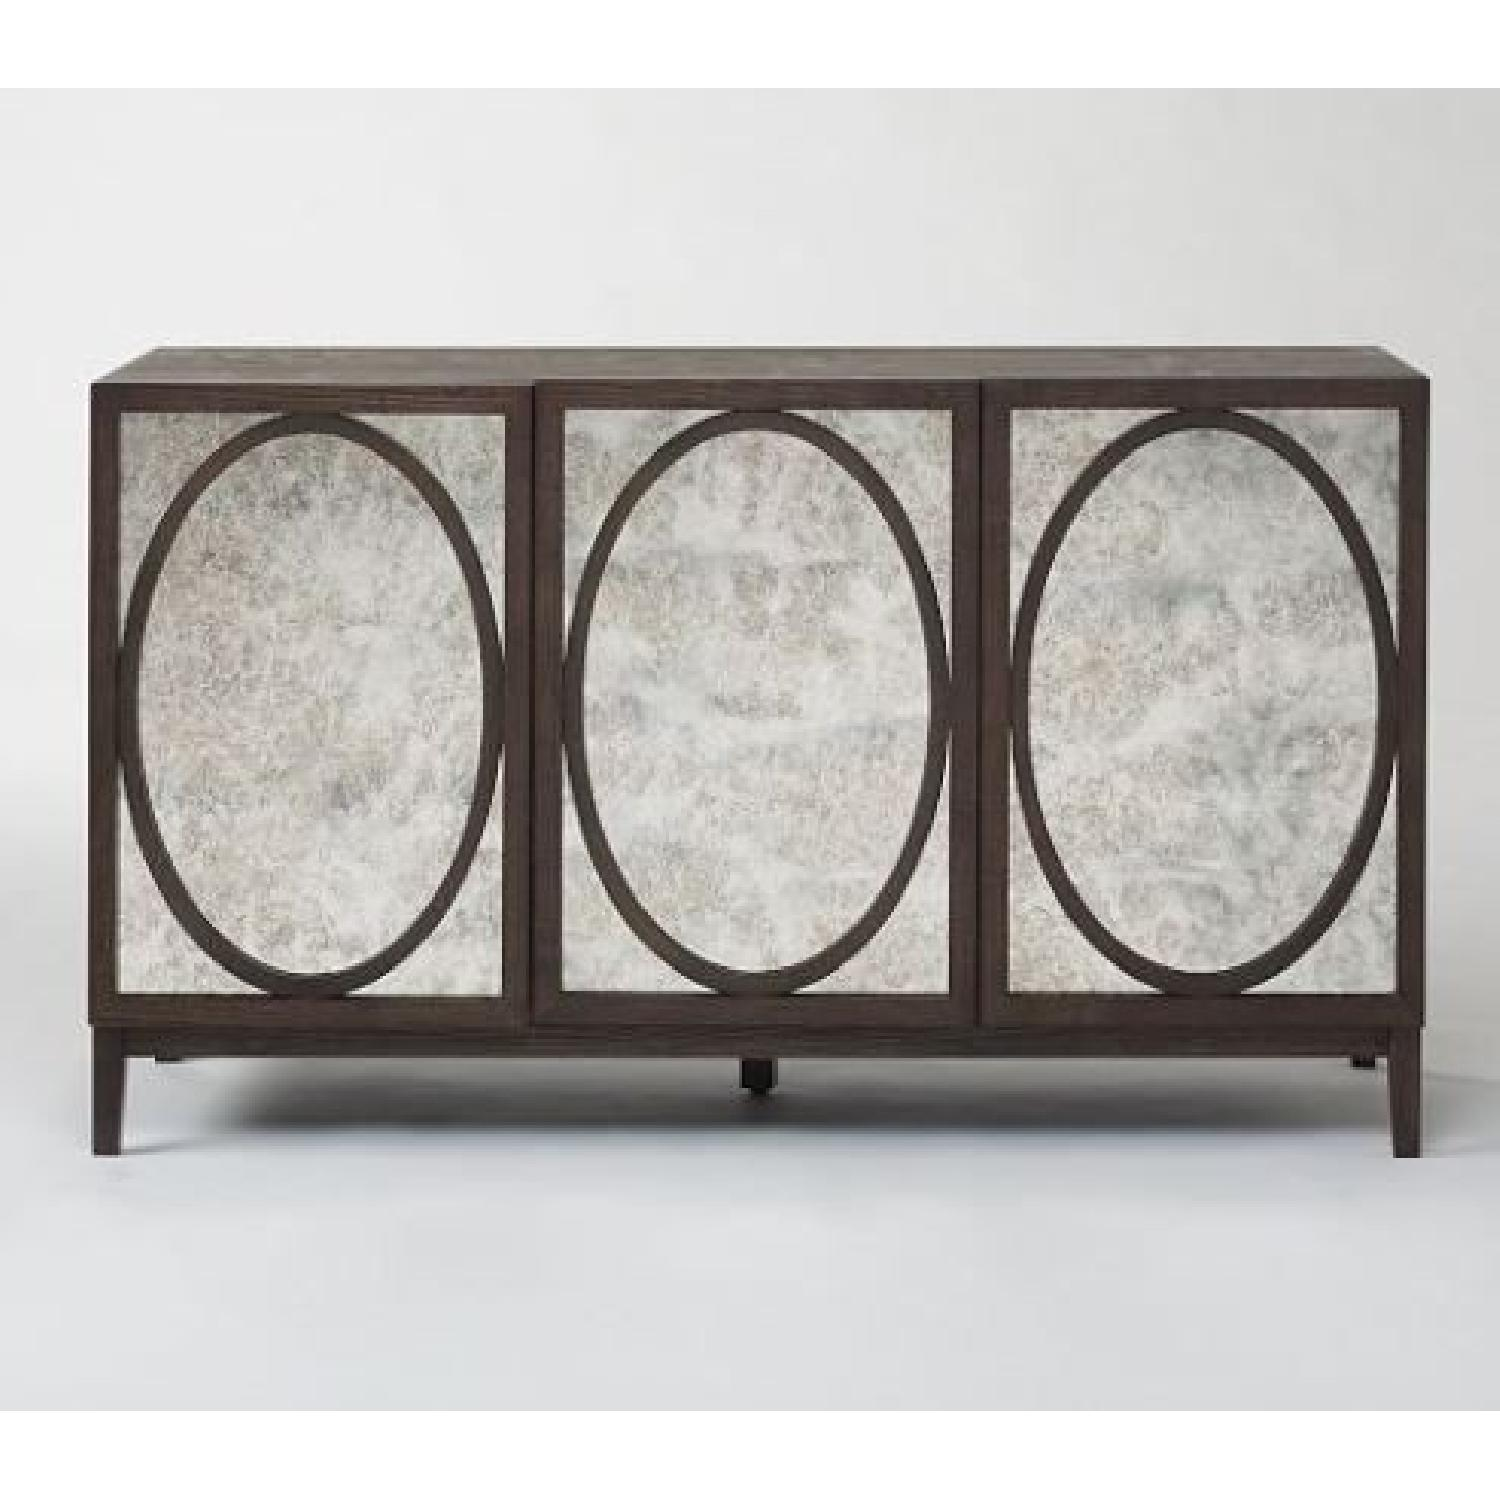 West Elm Foxed Mirror Buffet - image-6